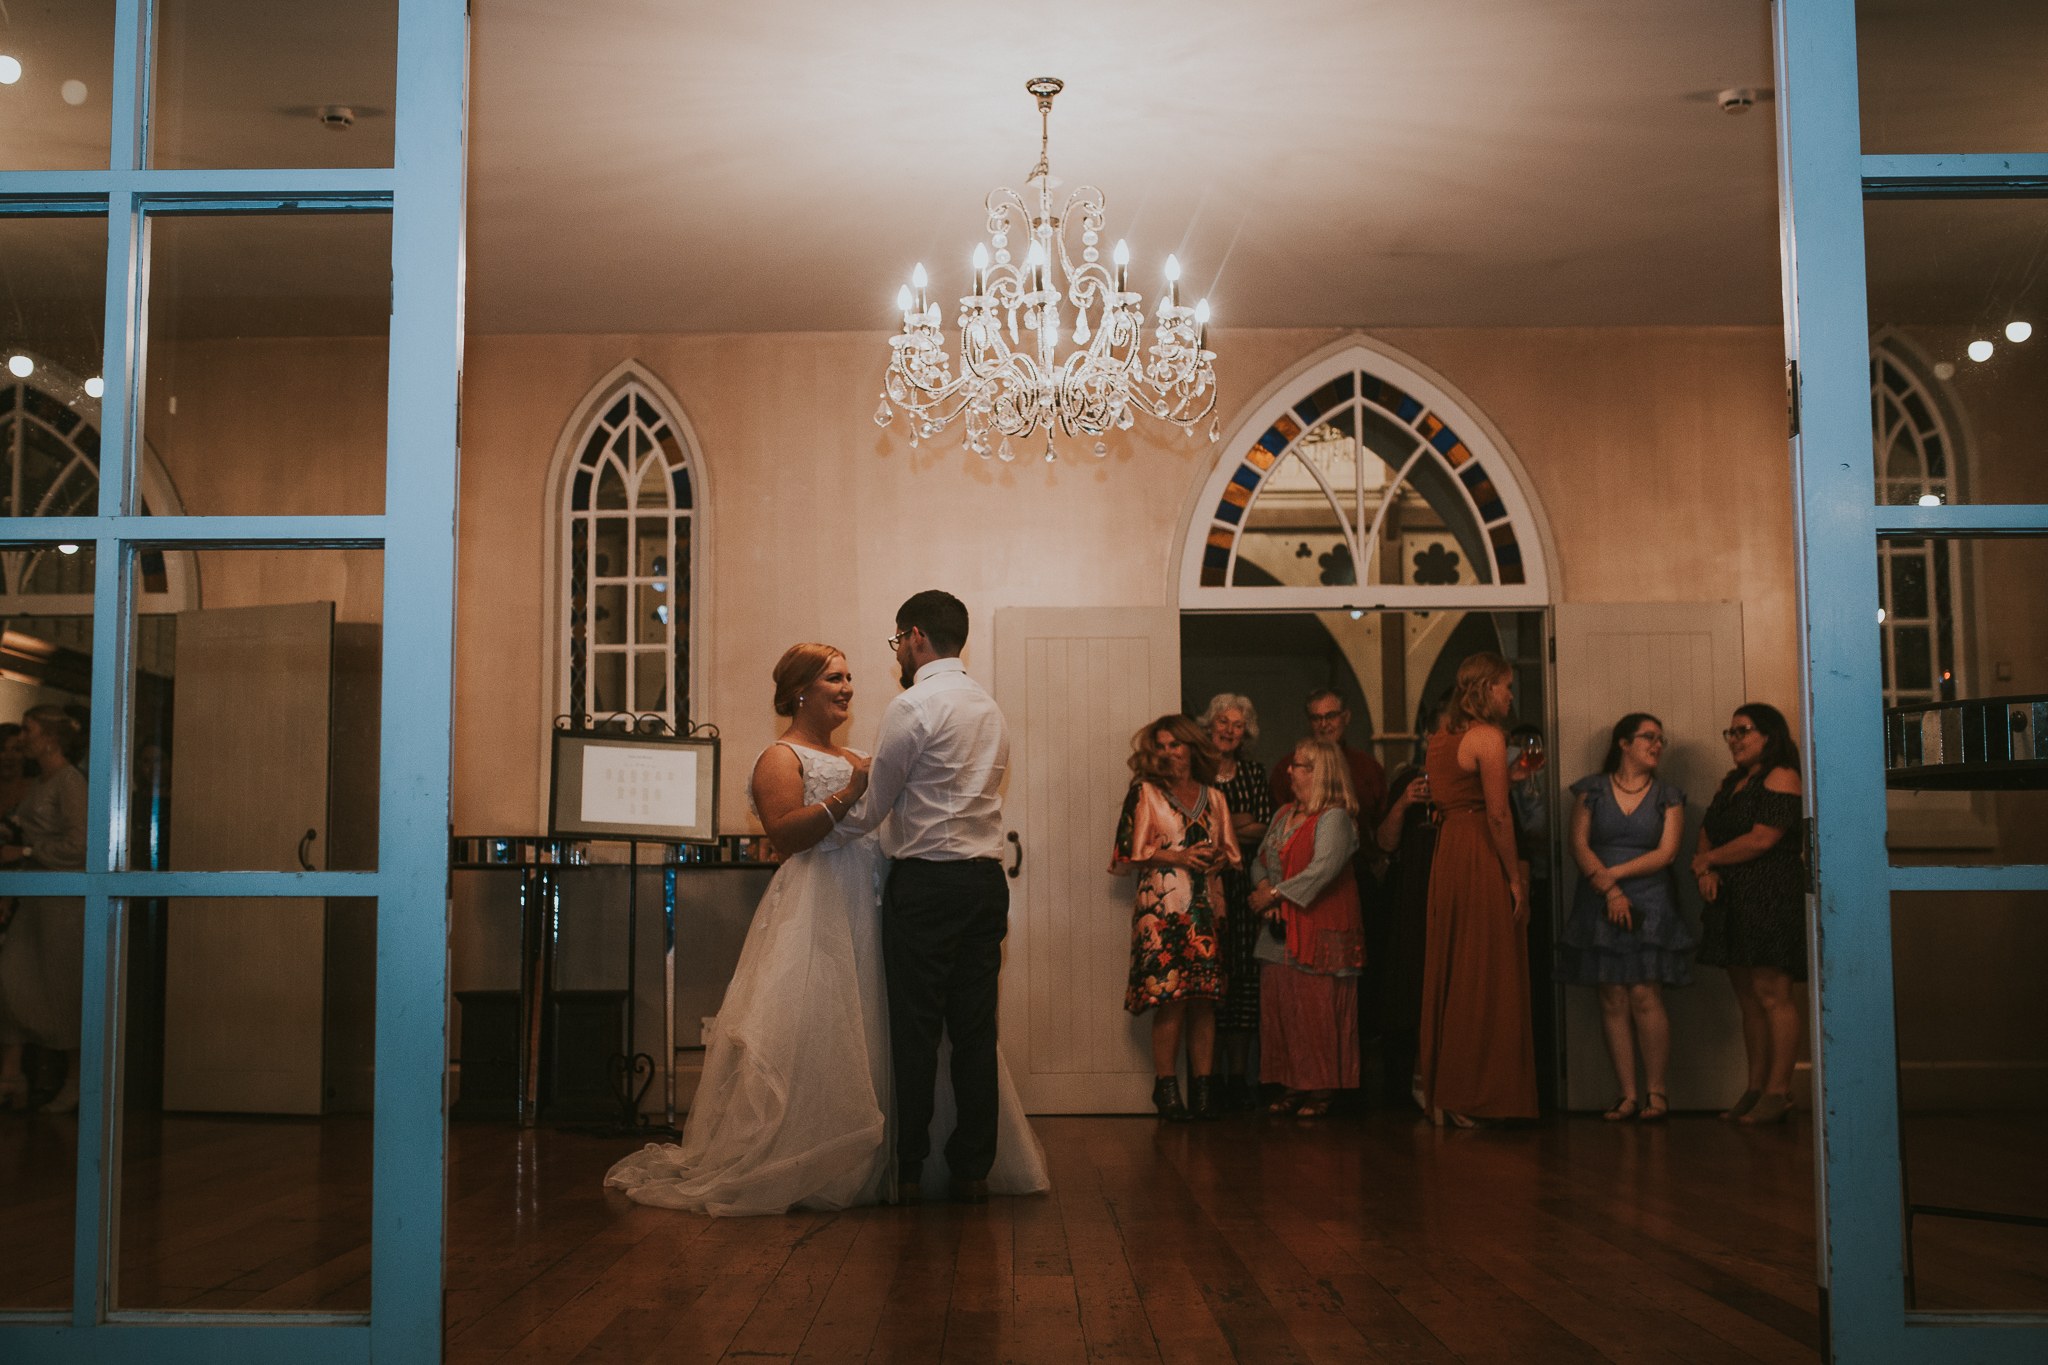 Lisa Fisher Photography - The old  Church Weddings & Functions Meanne Napier-650.jpg